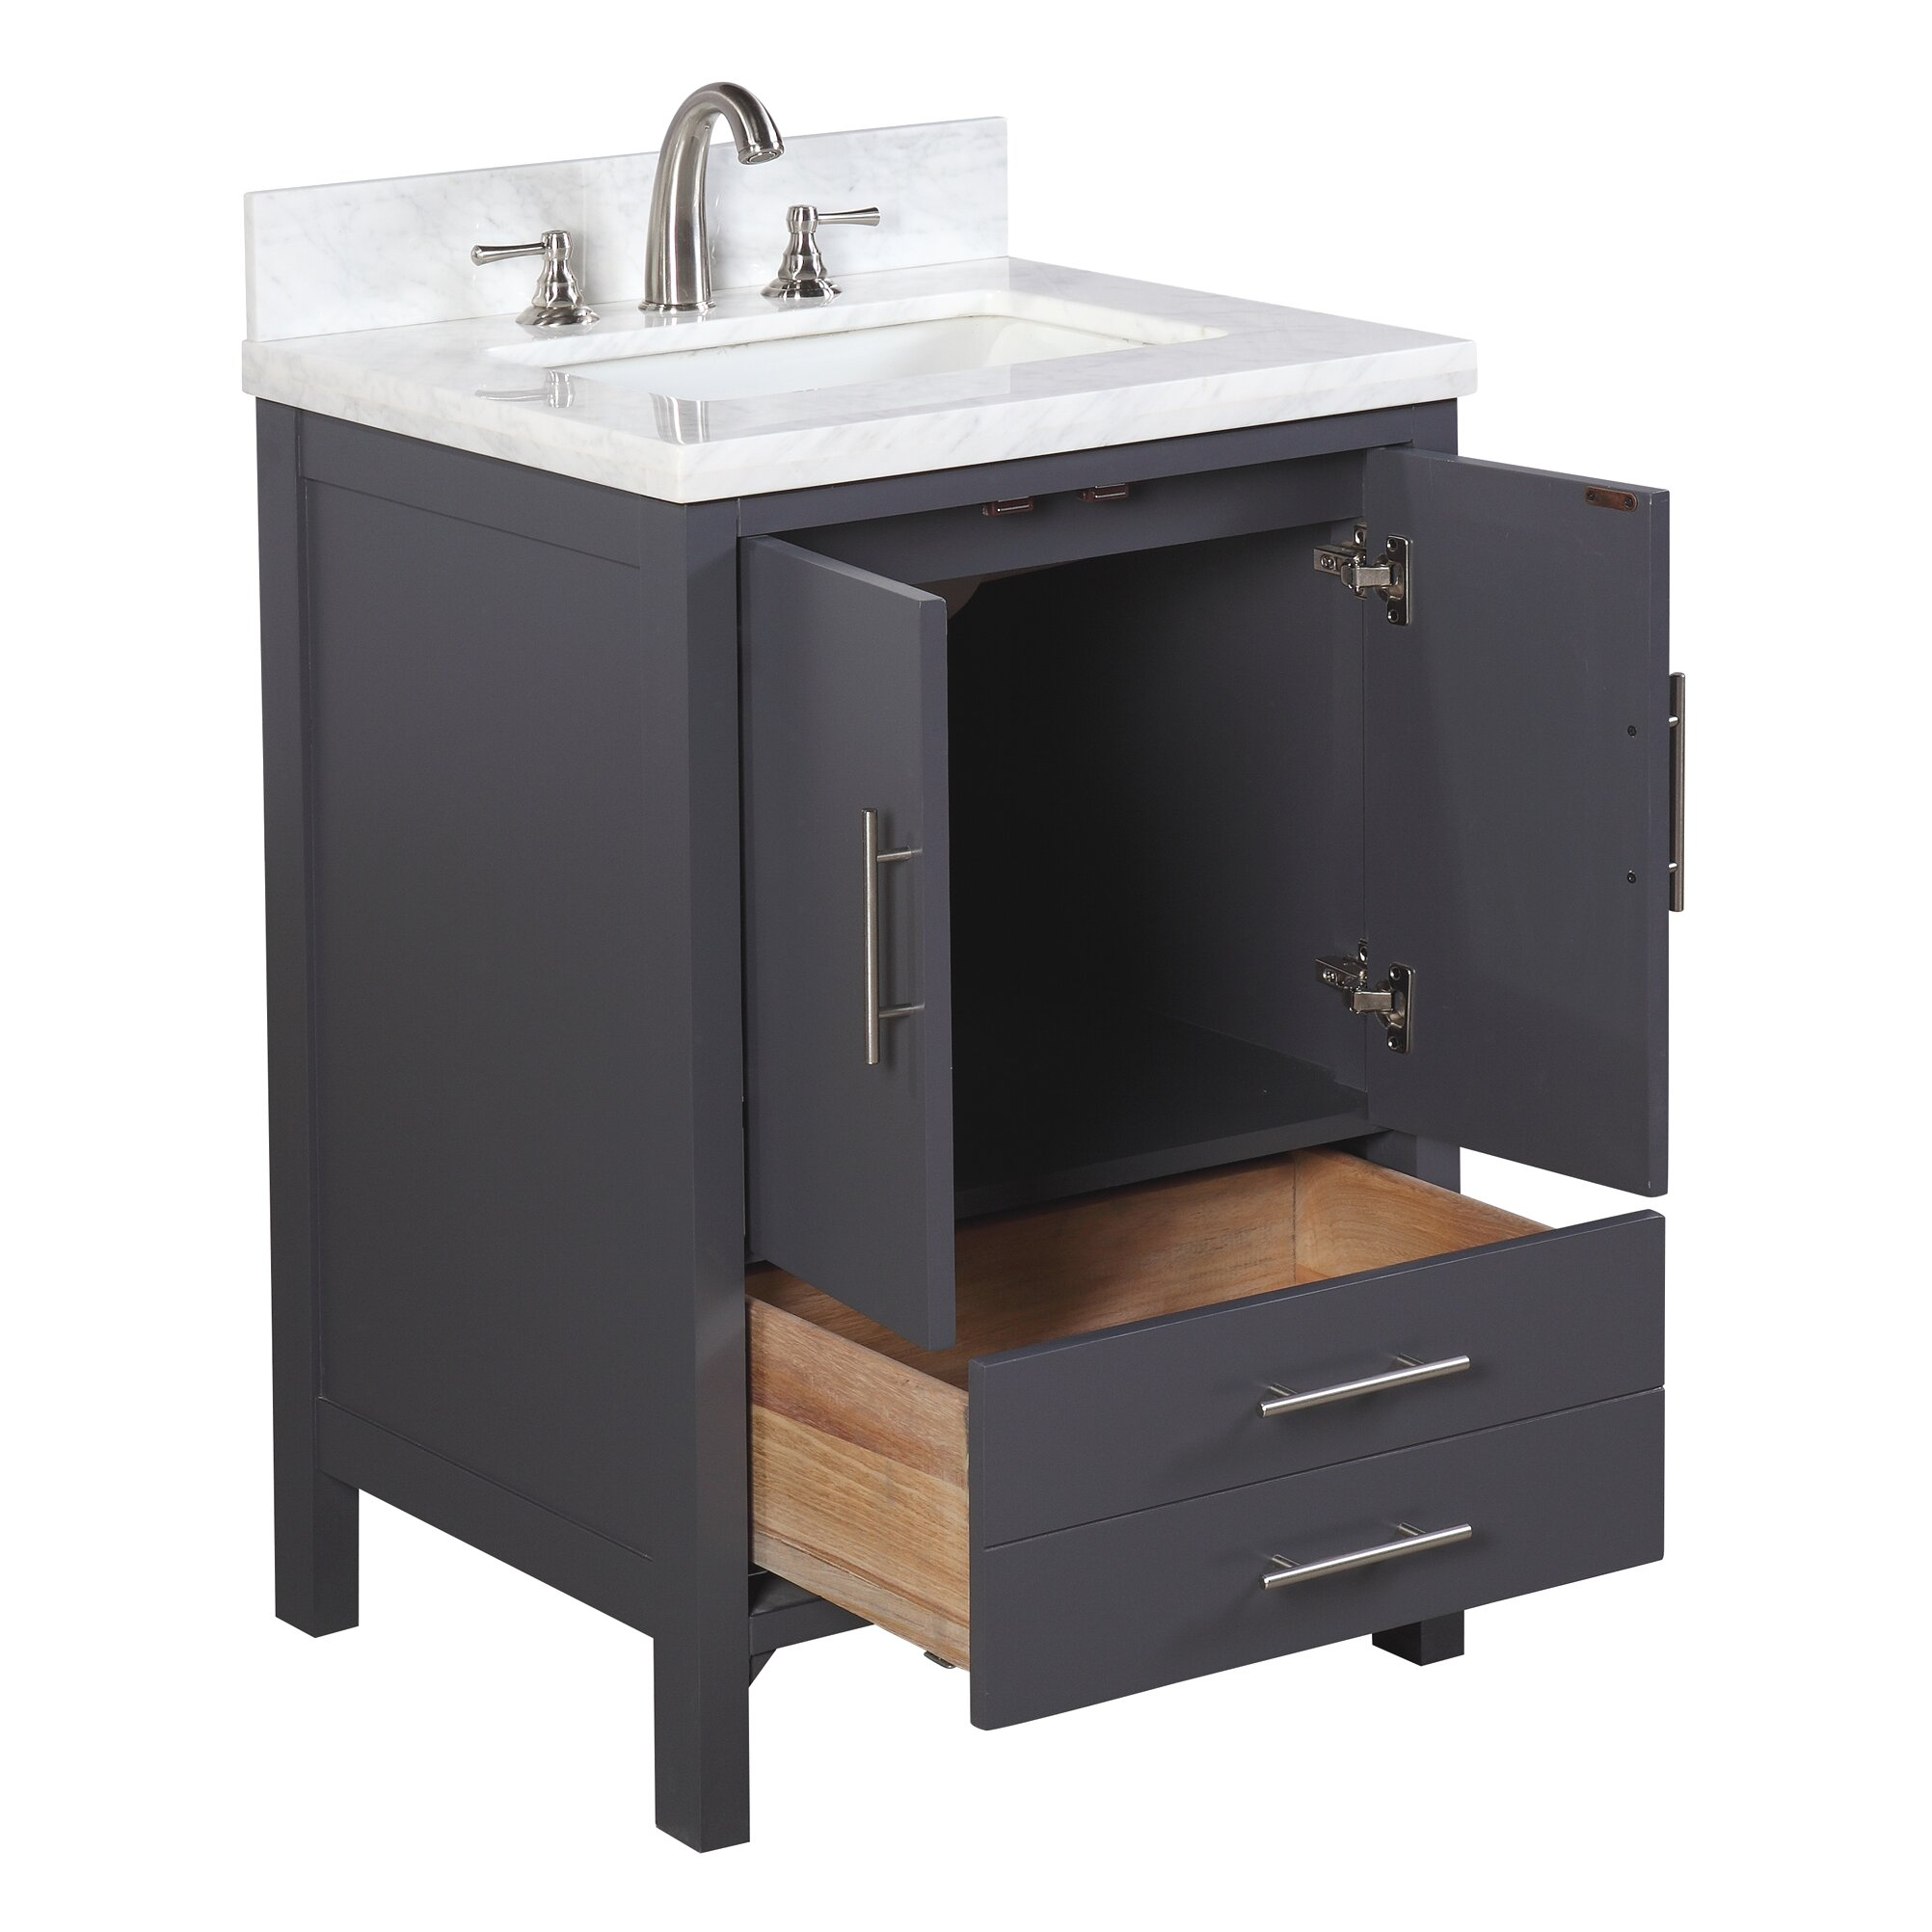 Kbc California 24 Single Bathroom Vanity Set Reviews Wayfair